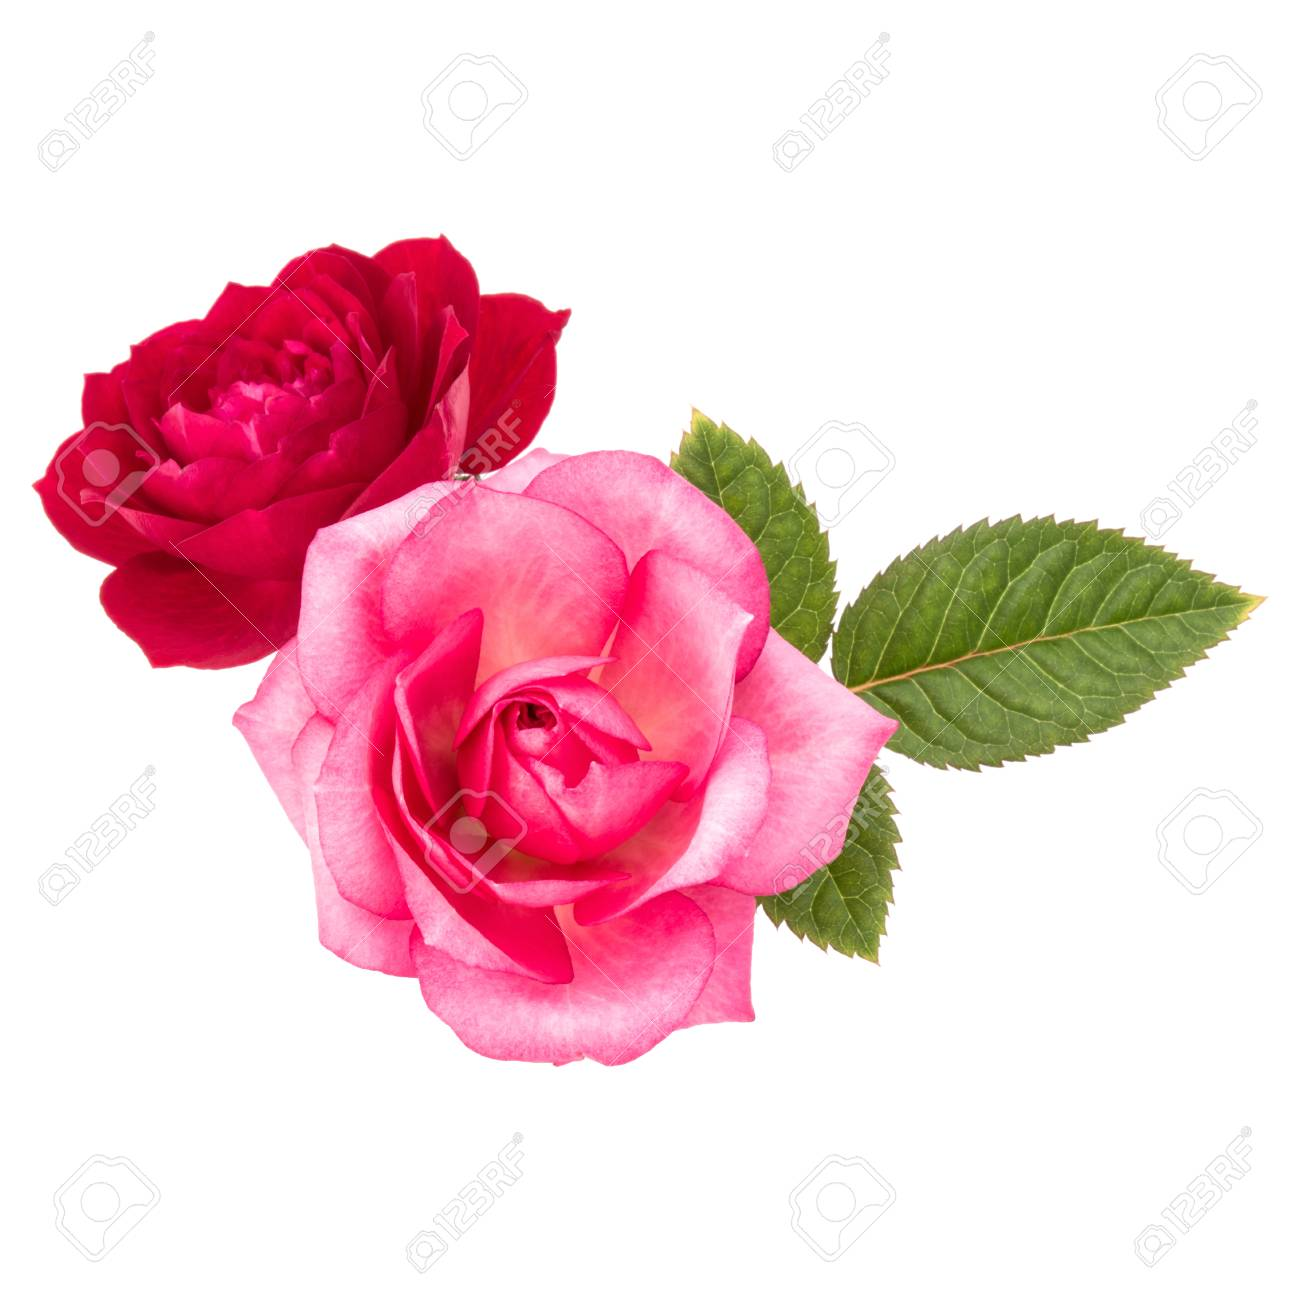 Two Red And Pink Rose Flowers Isolated With Leaves On White Stock